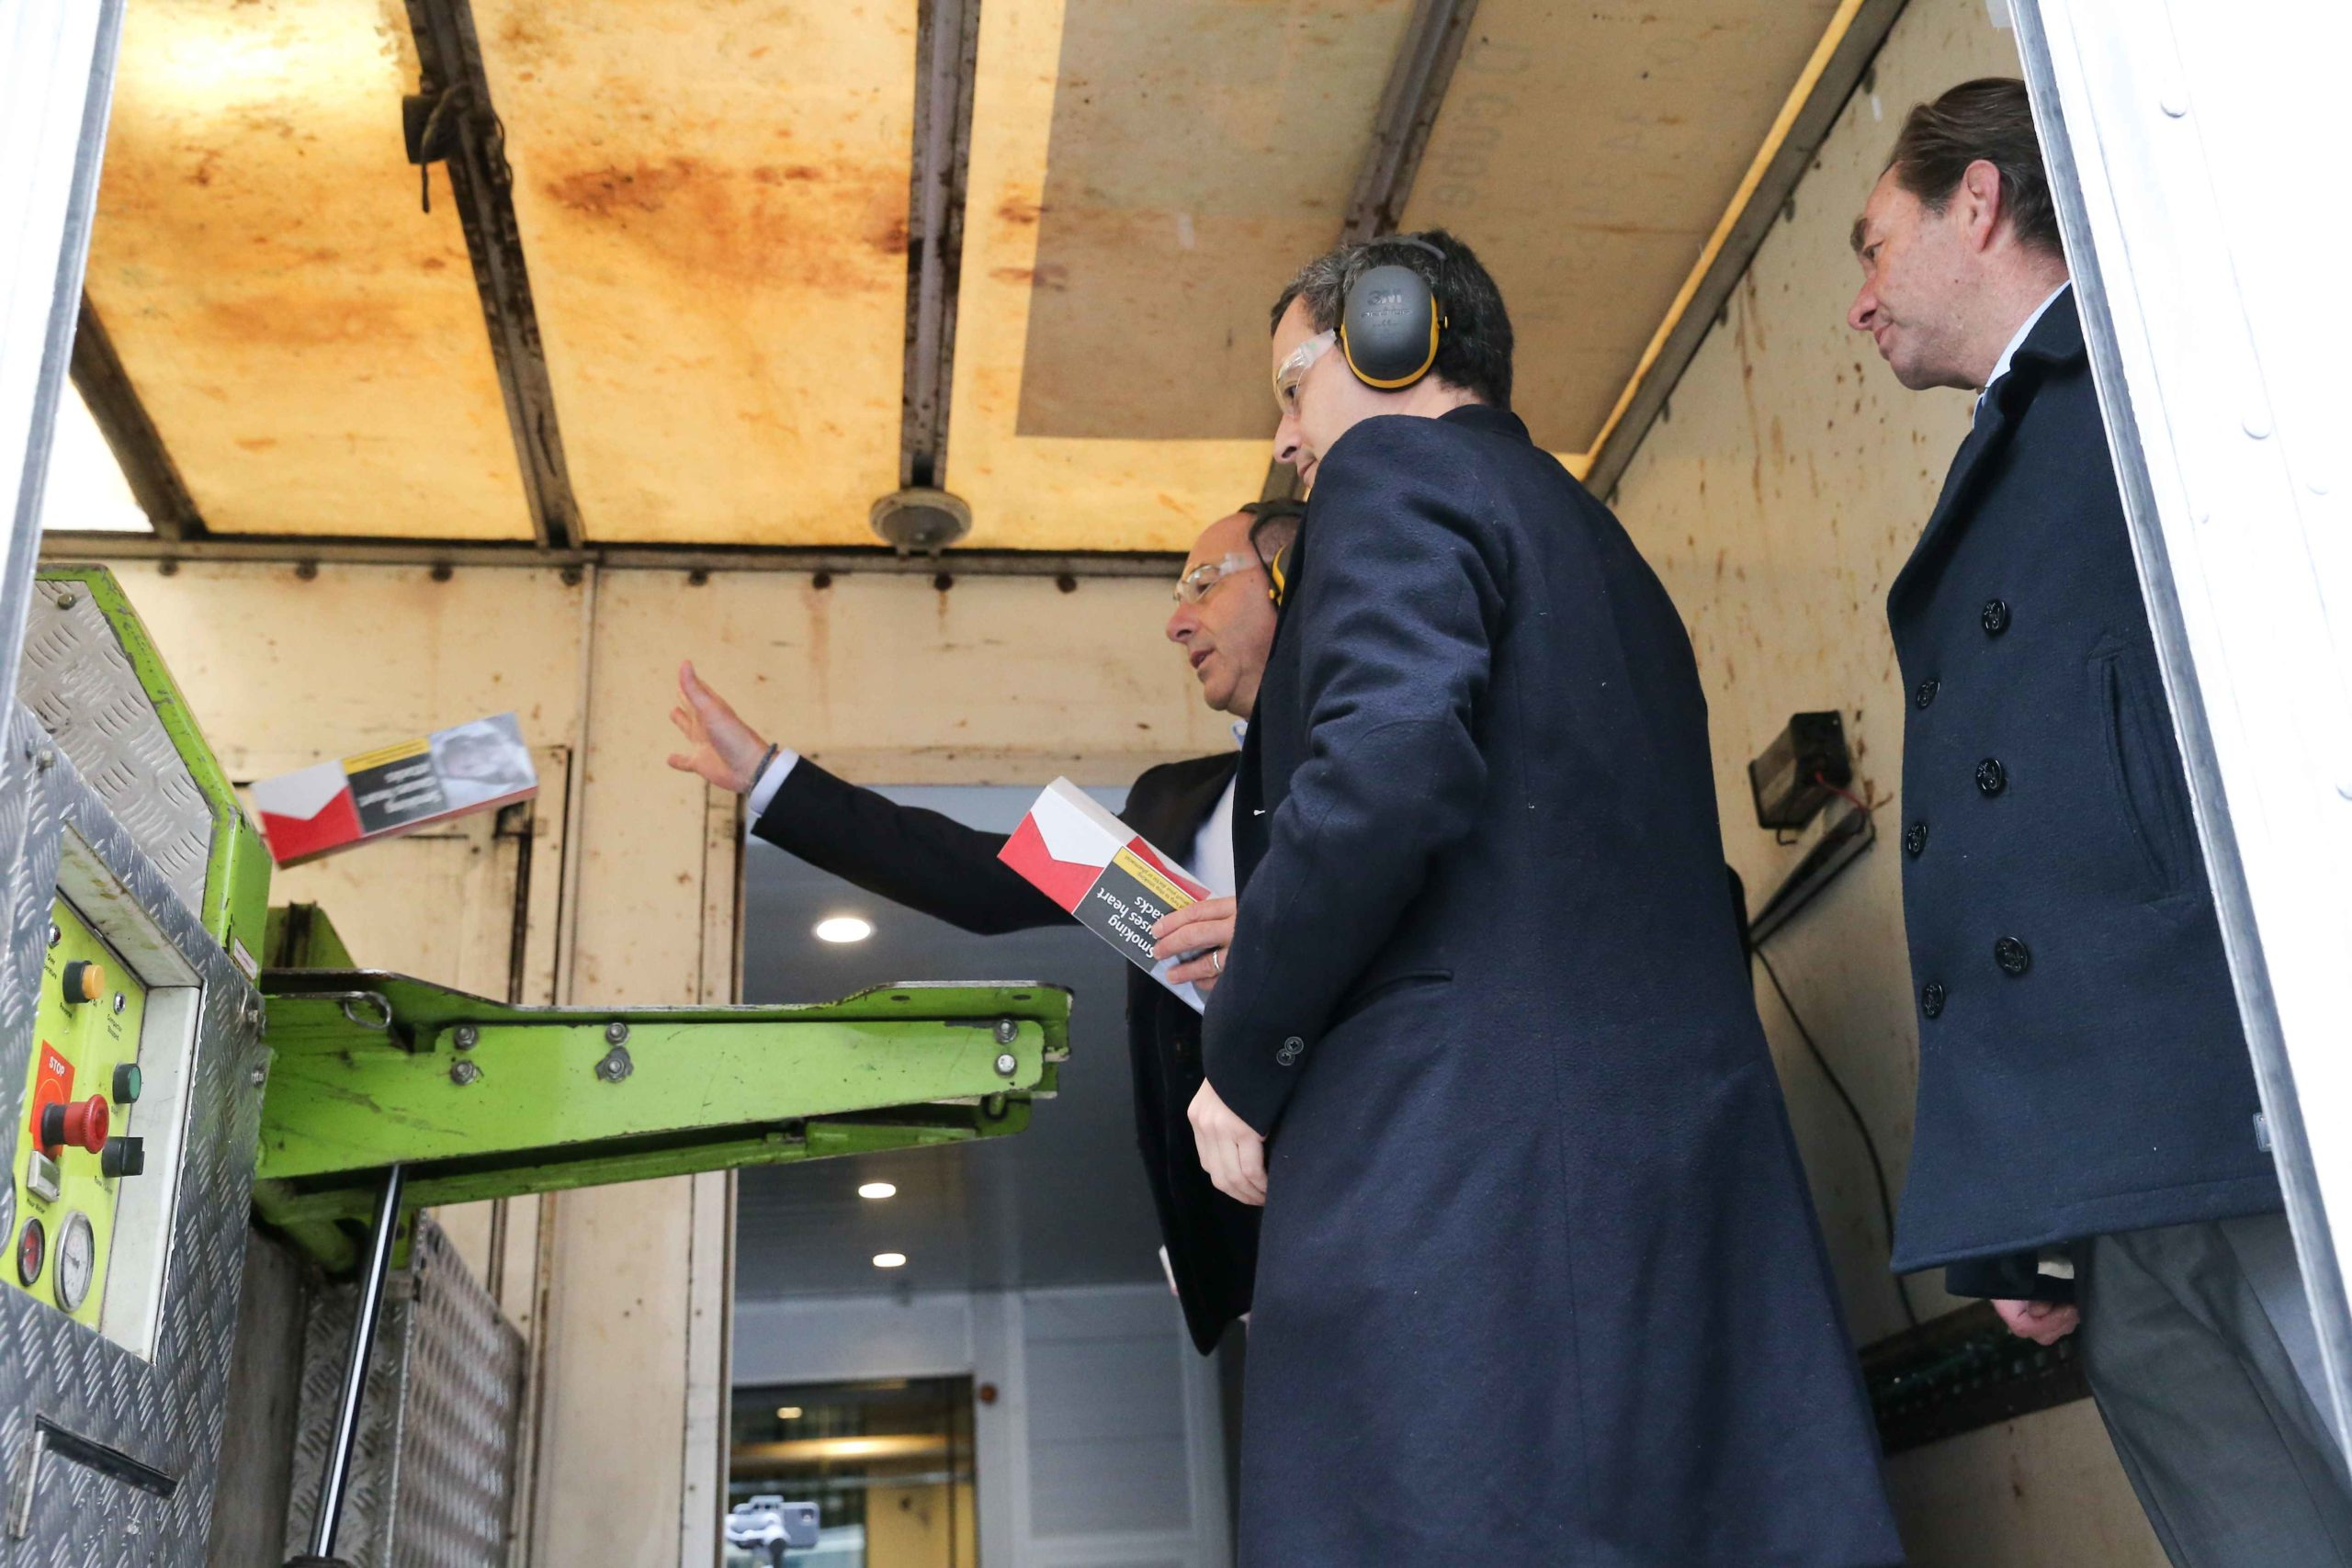 French Minister of Public Action and Accounts Gerald Darmanin (C) destroys illegal cigarettes in a shredder at the Paris regional customs service on February 04, 2020, where he went to present the 2019 results of the National plan to mobilise customs again